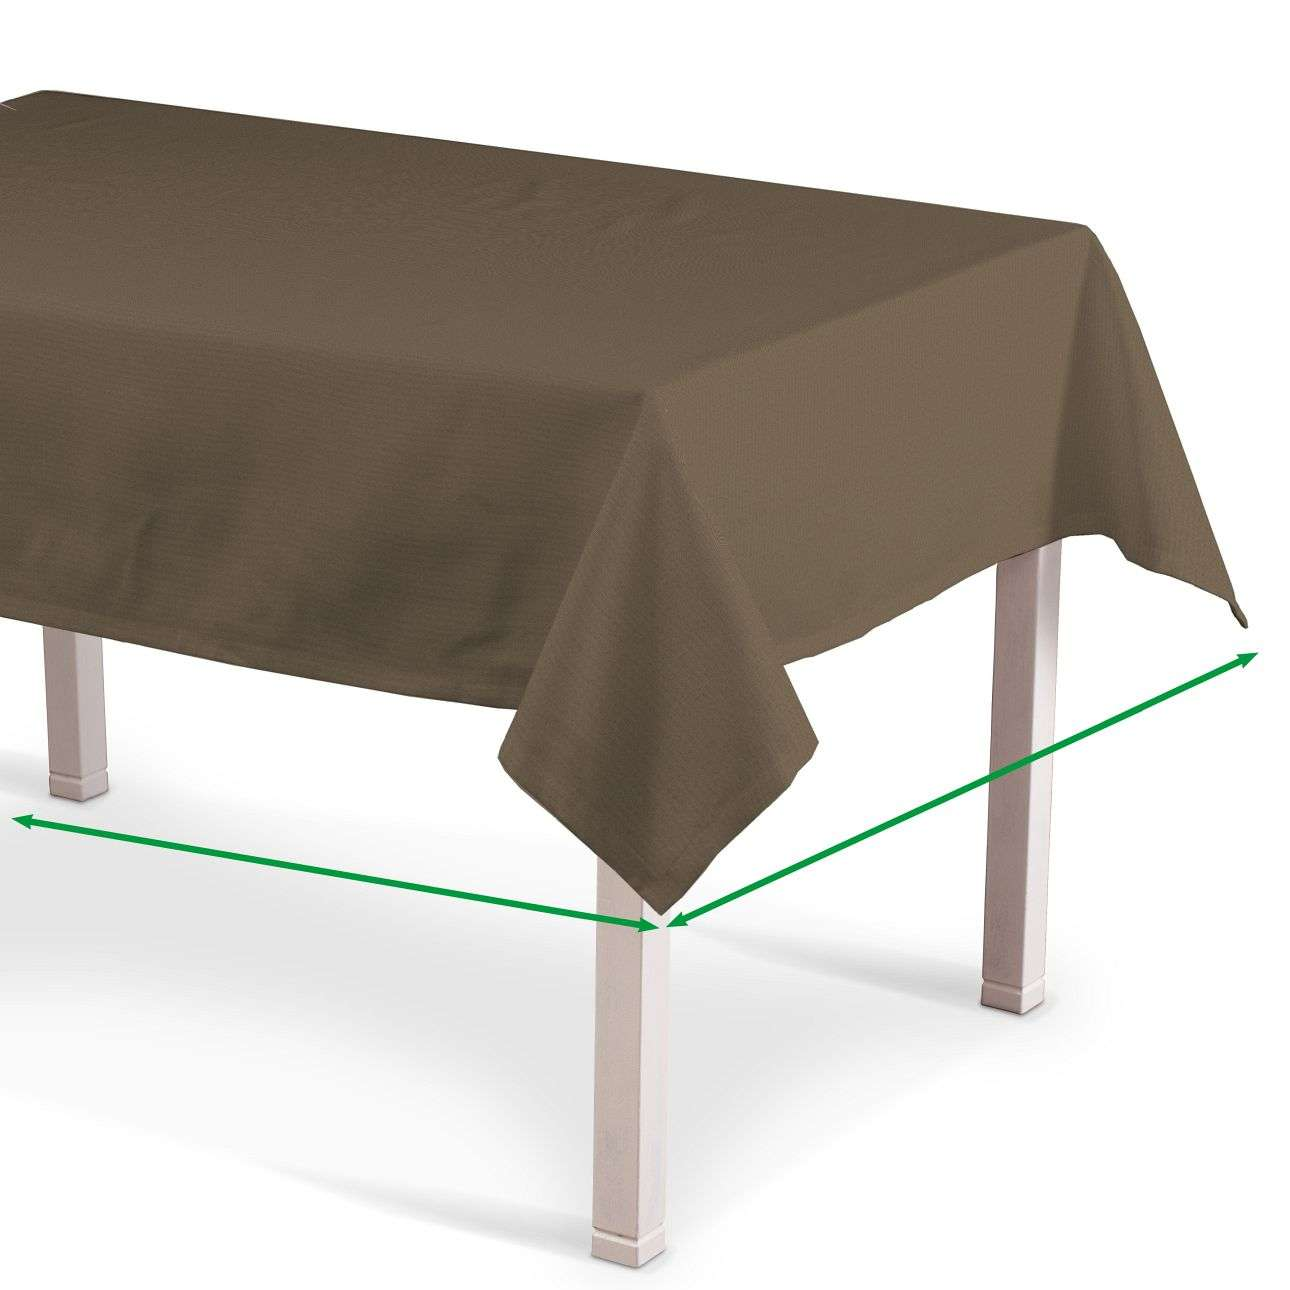 Rectangular tablecloth in collection Milano, fabric: 150-39